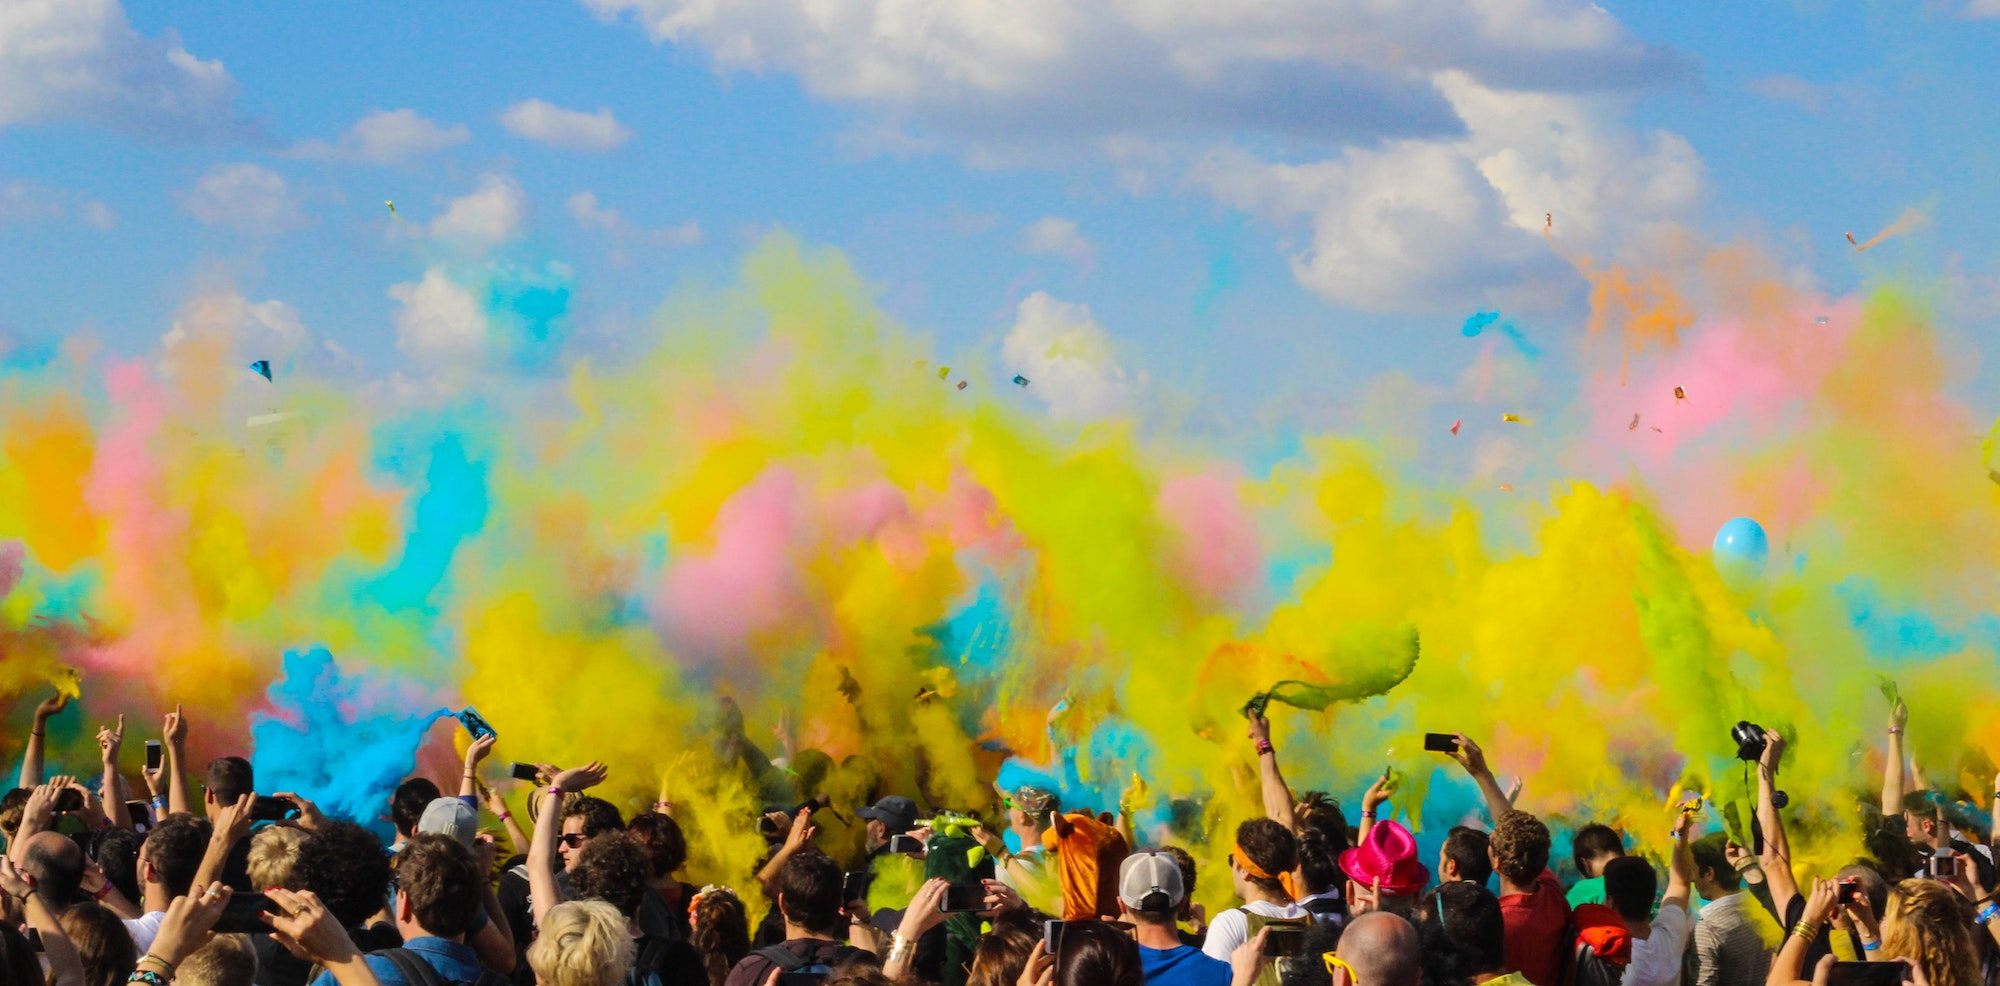 A crowd of people with a cloud of colorful paints above as they celebrate Holi festival in Paris in March.